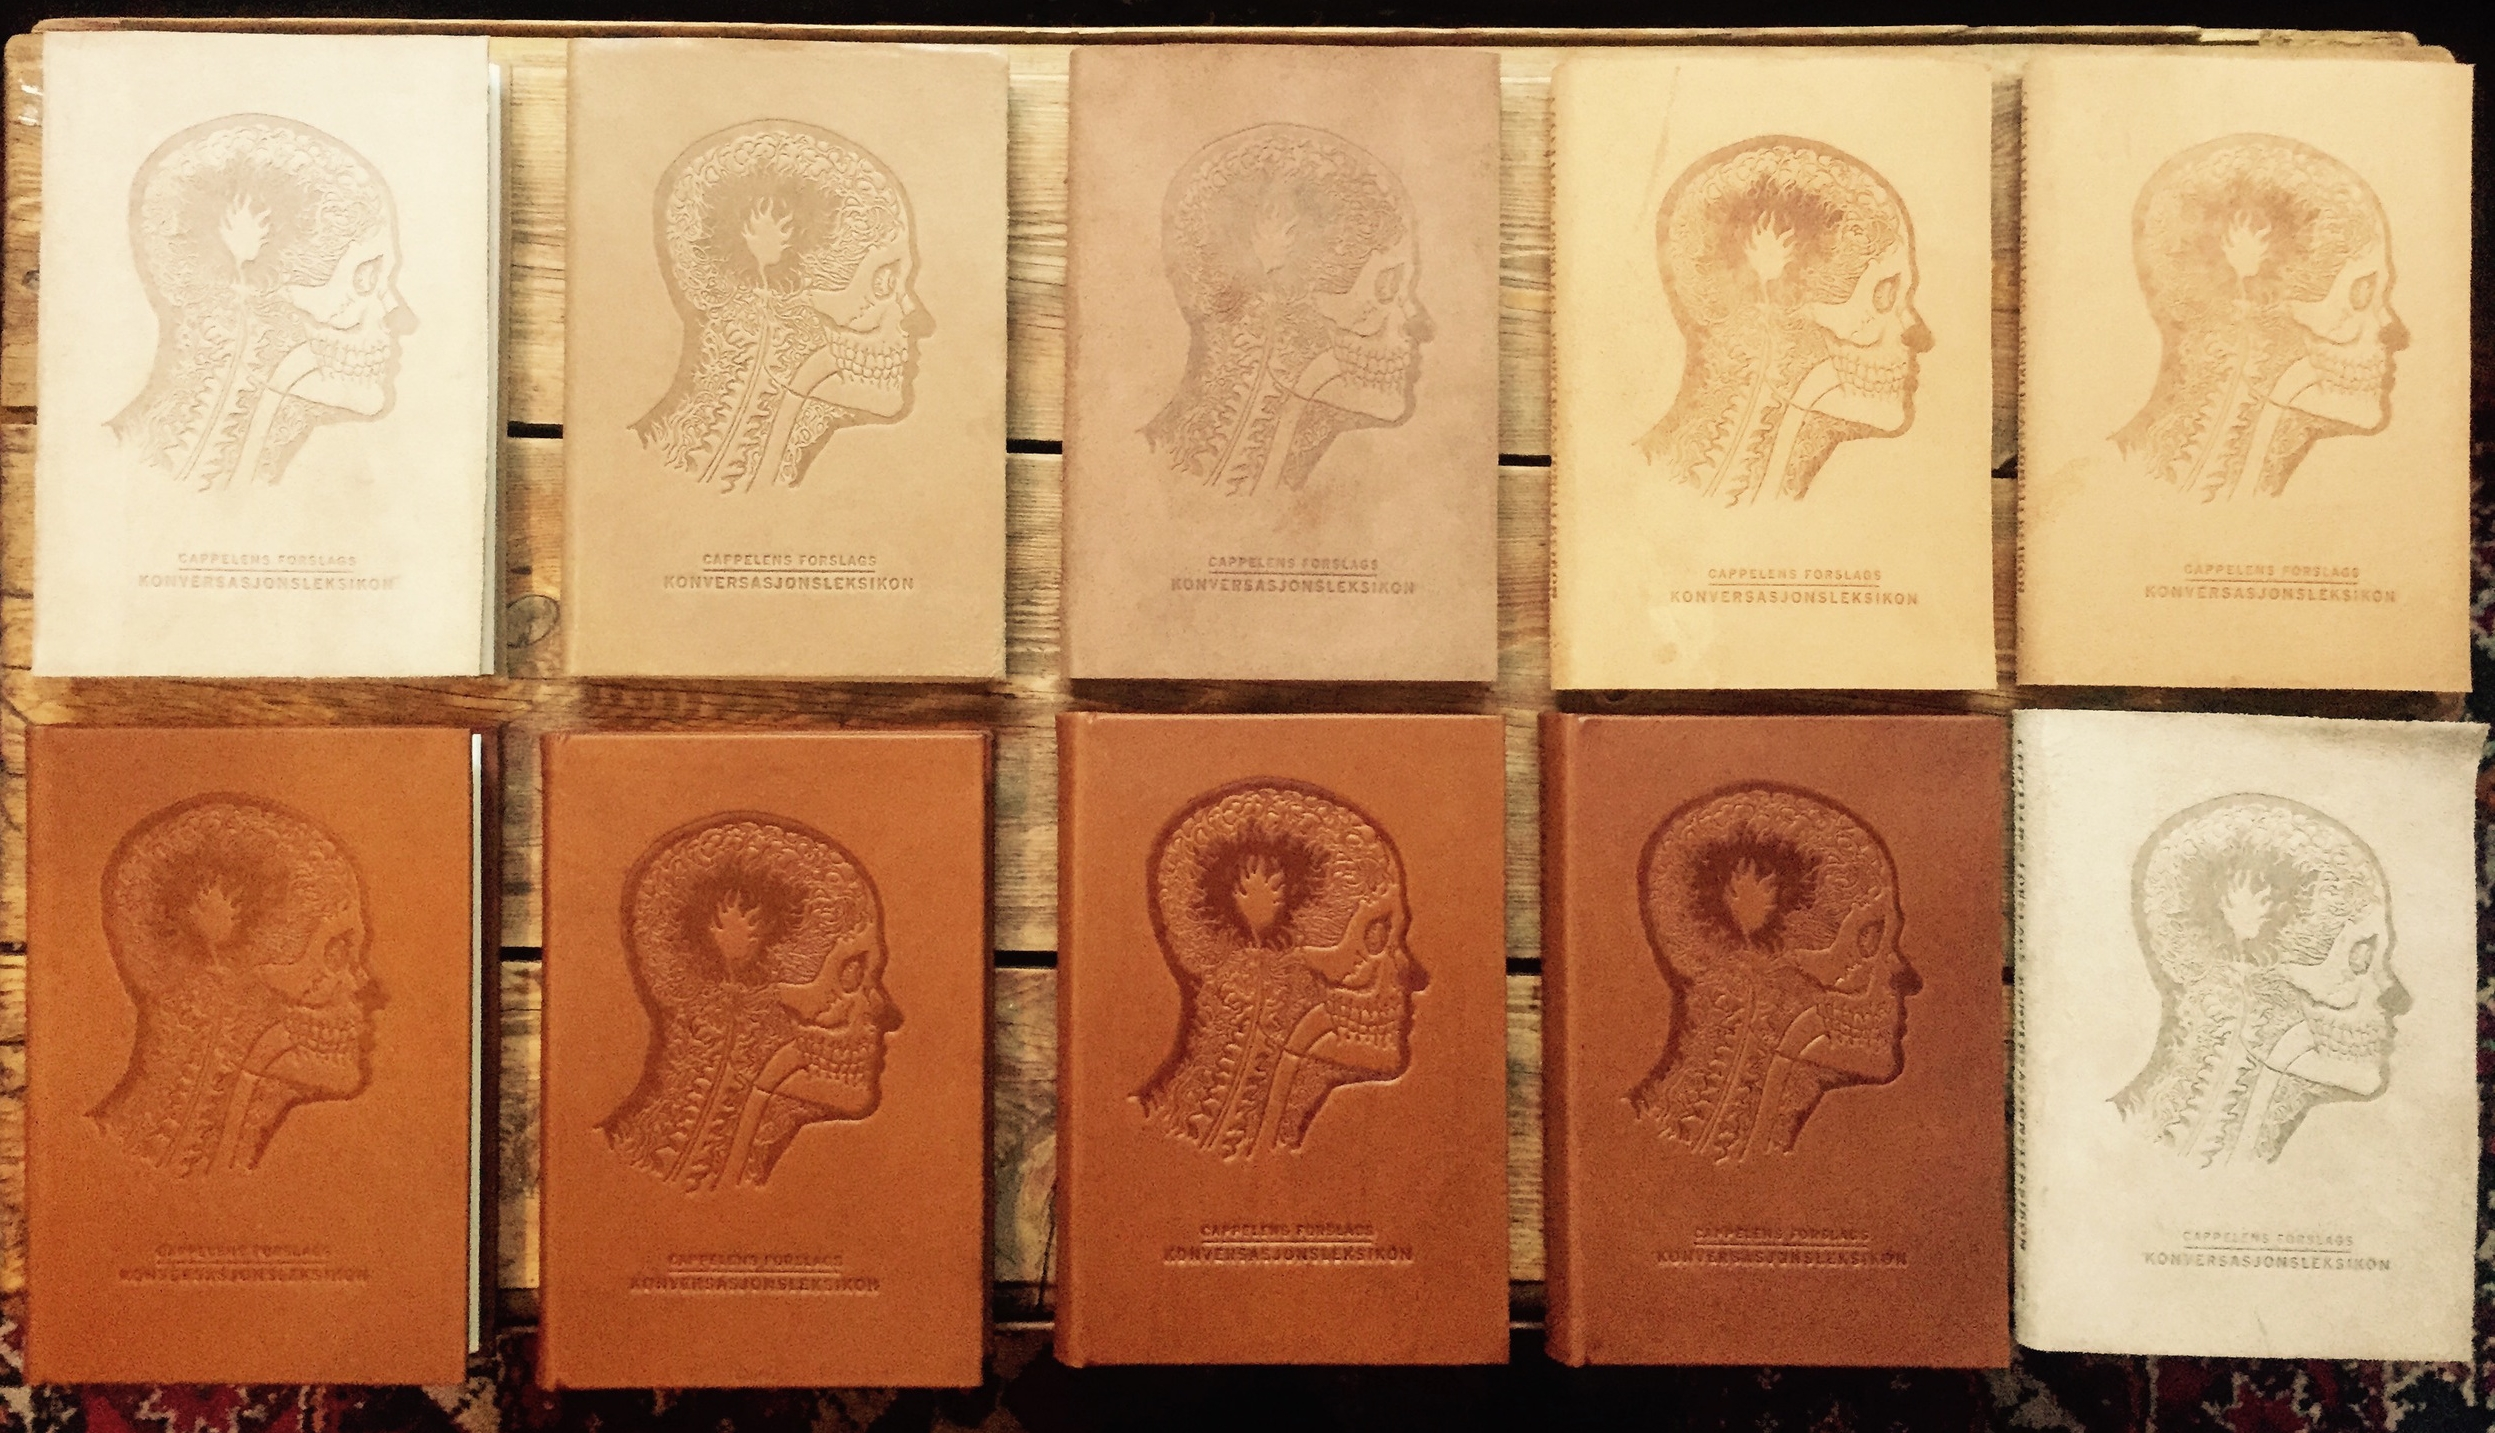 Calfskin bound hardcover variants, CFCL 4th edition